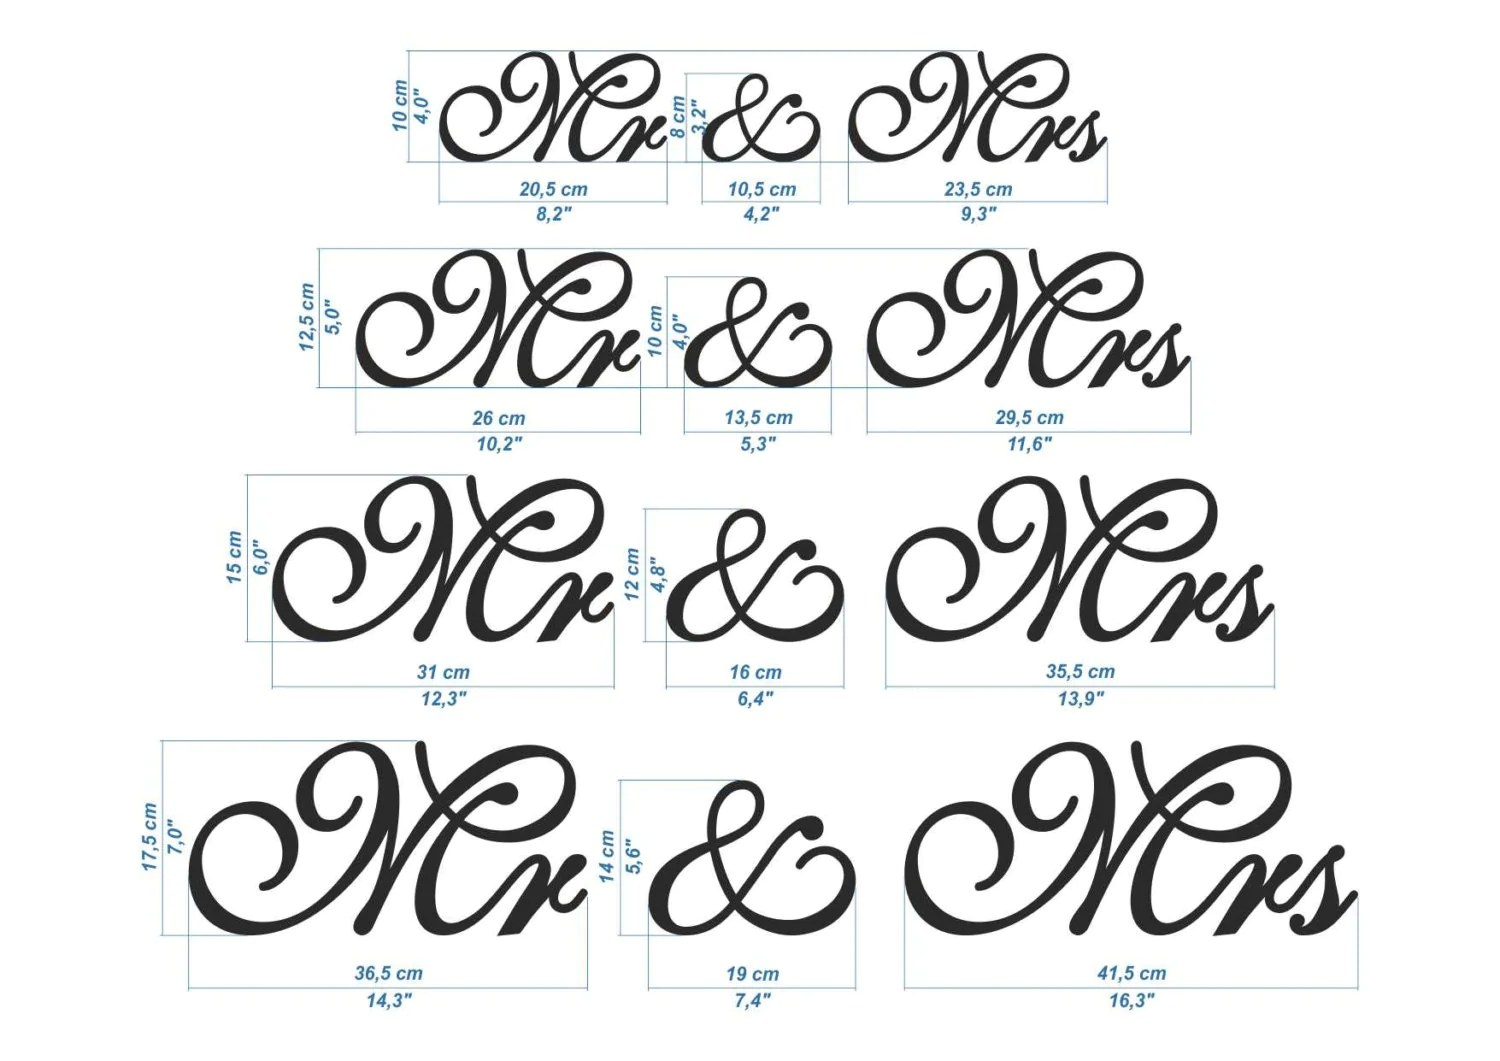 New Font Wooden Letters Mr Mrs Set Wedding Table Decor. Mr